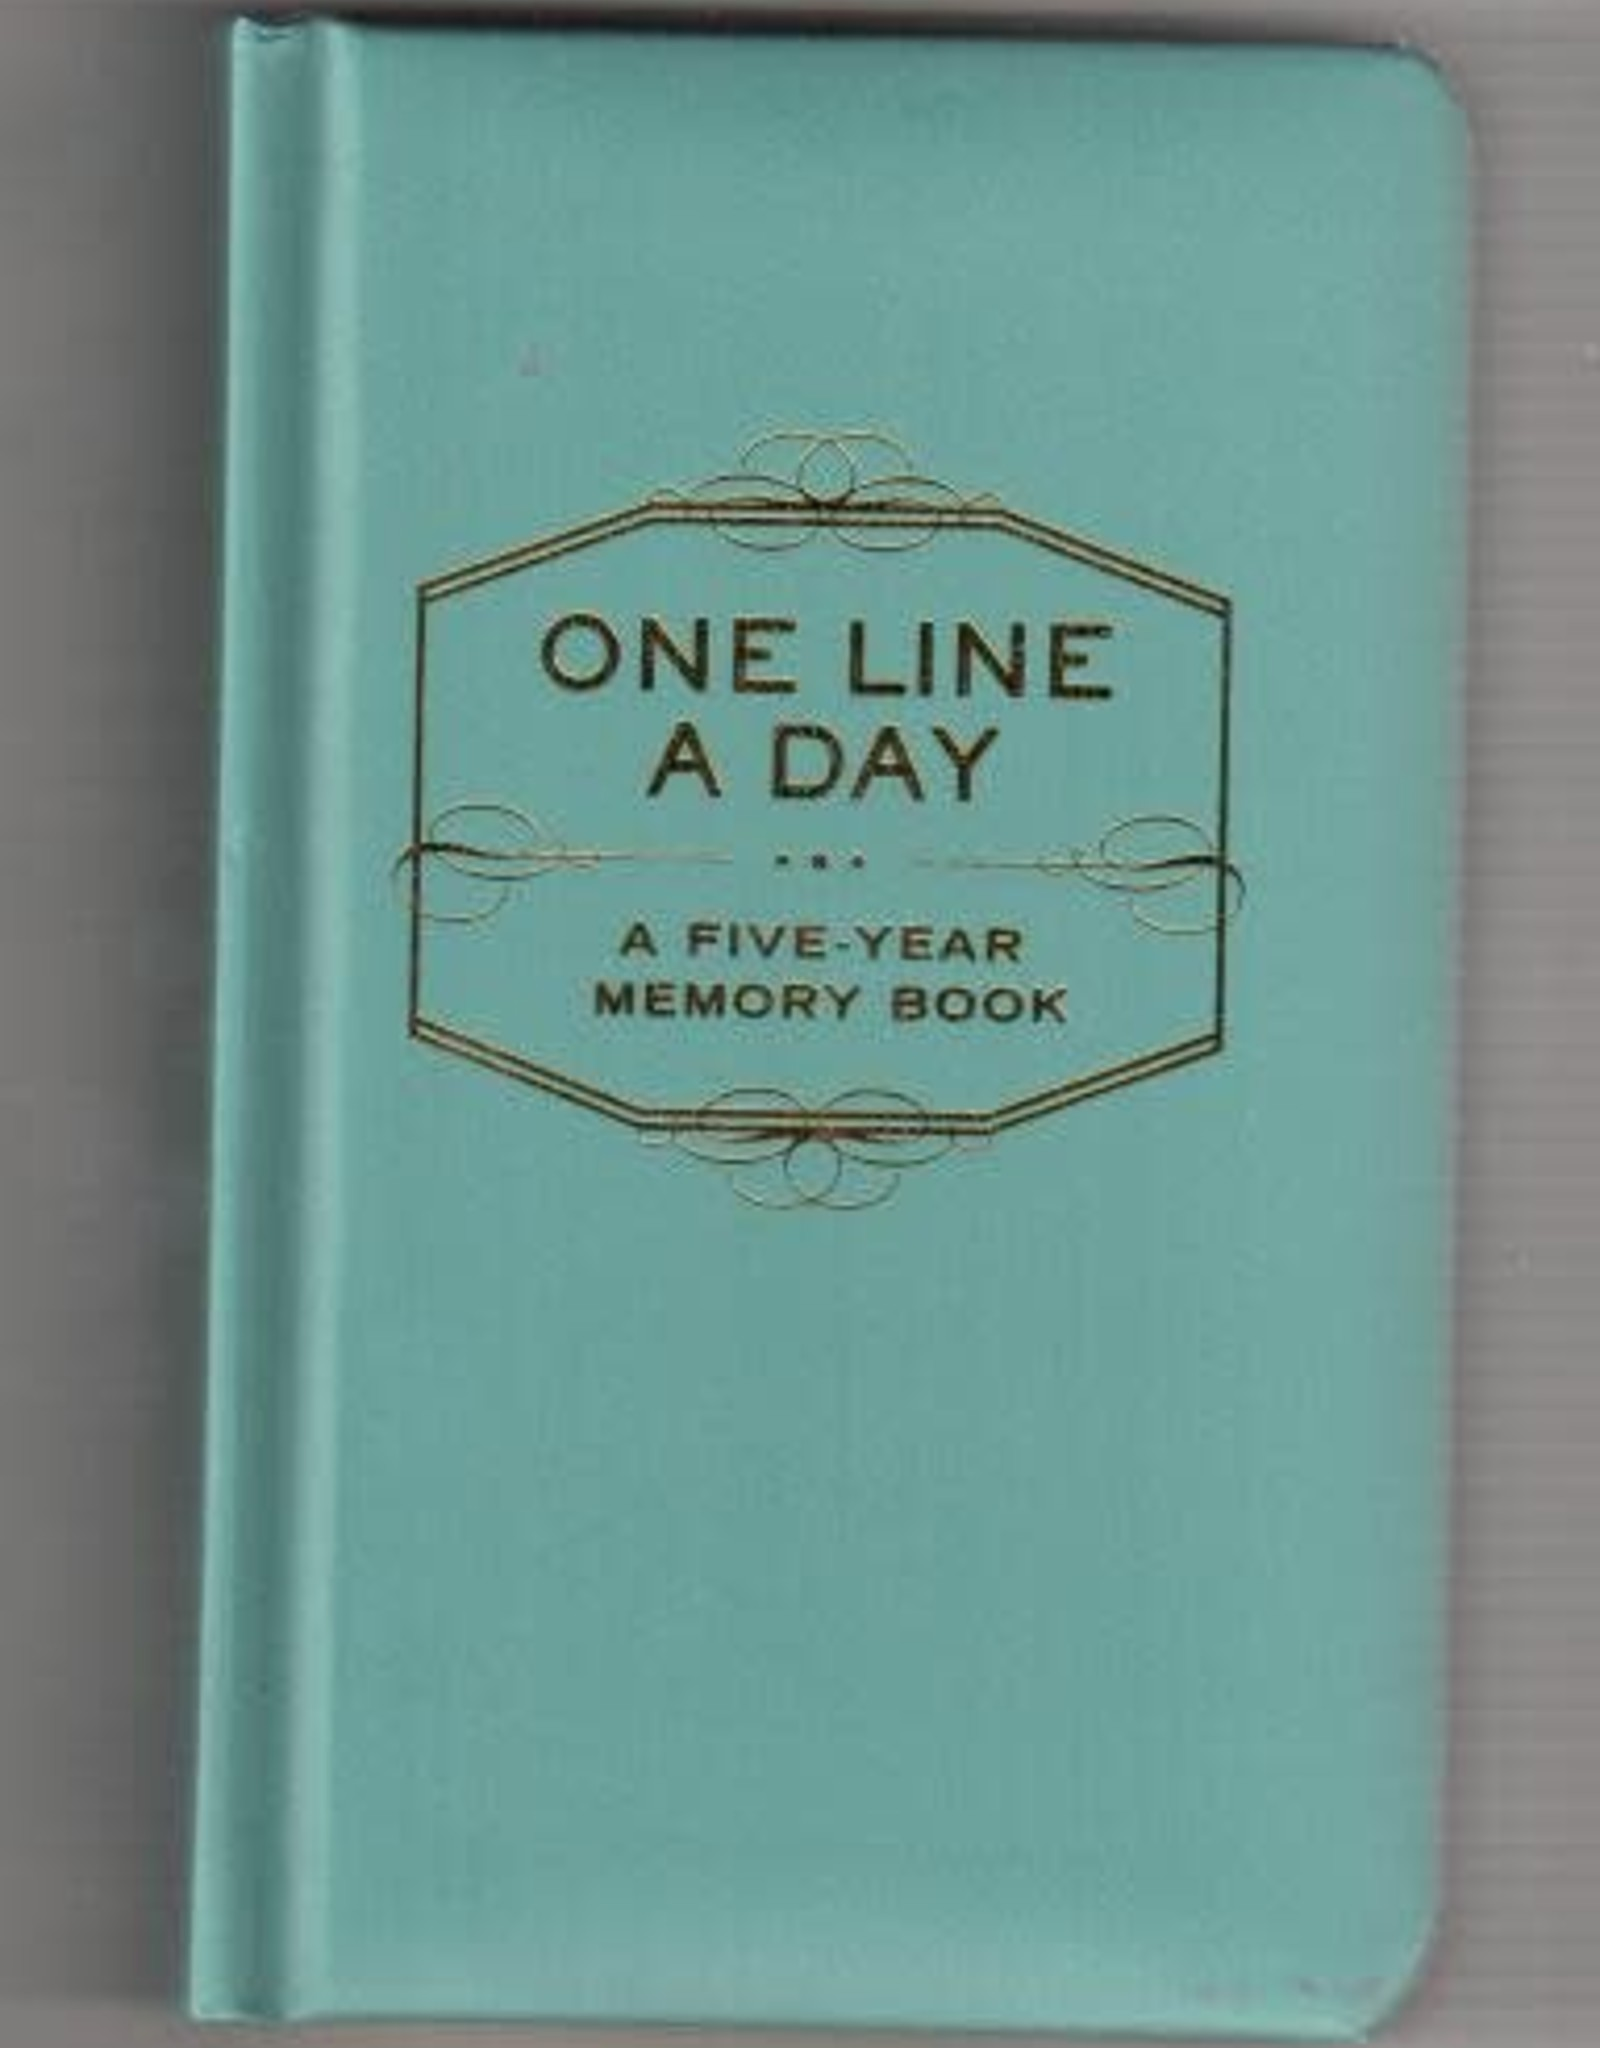 Chronicle books One Line A Day - A Five-Year Memory Book